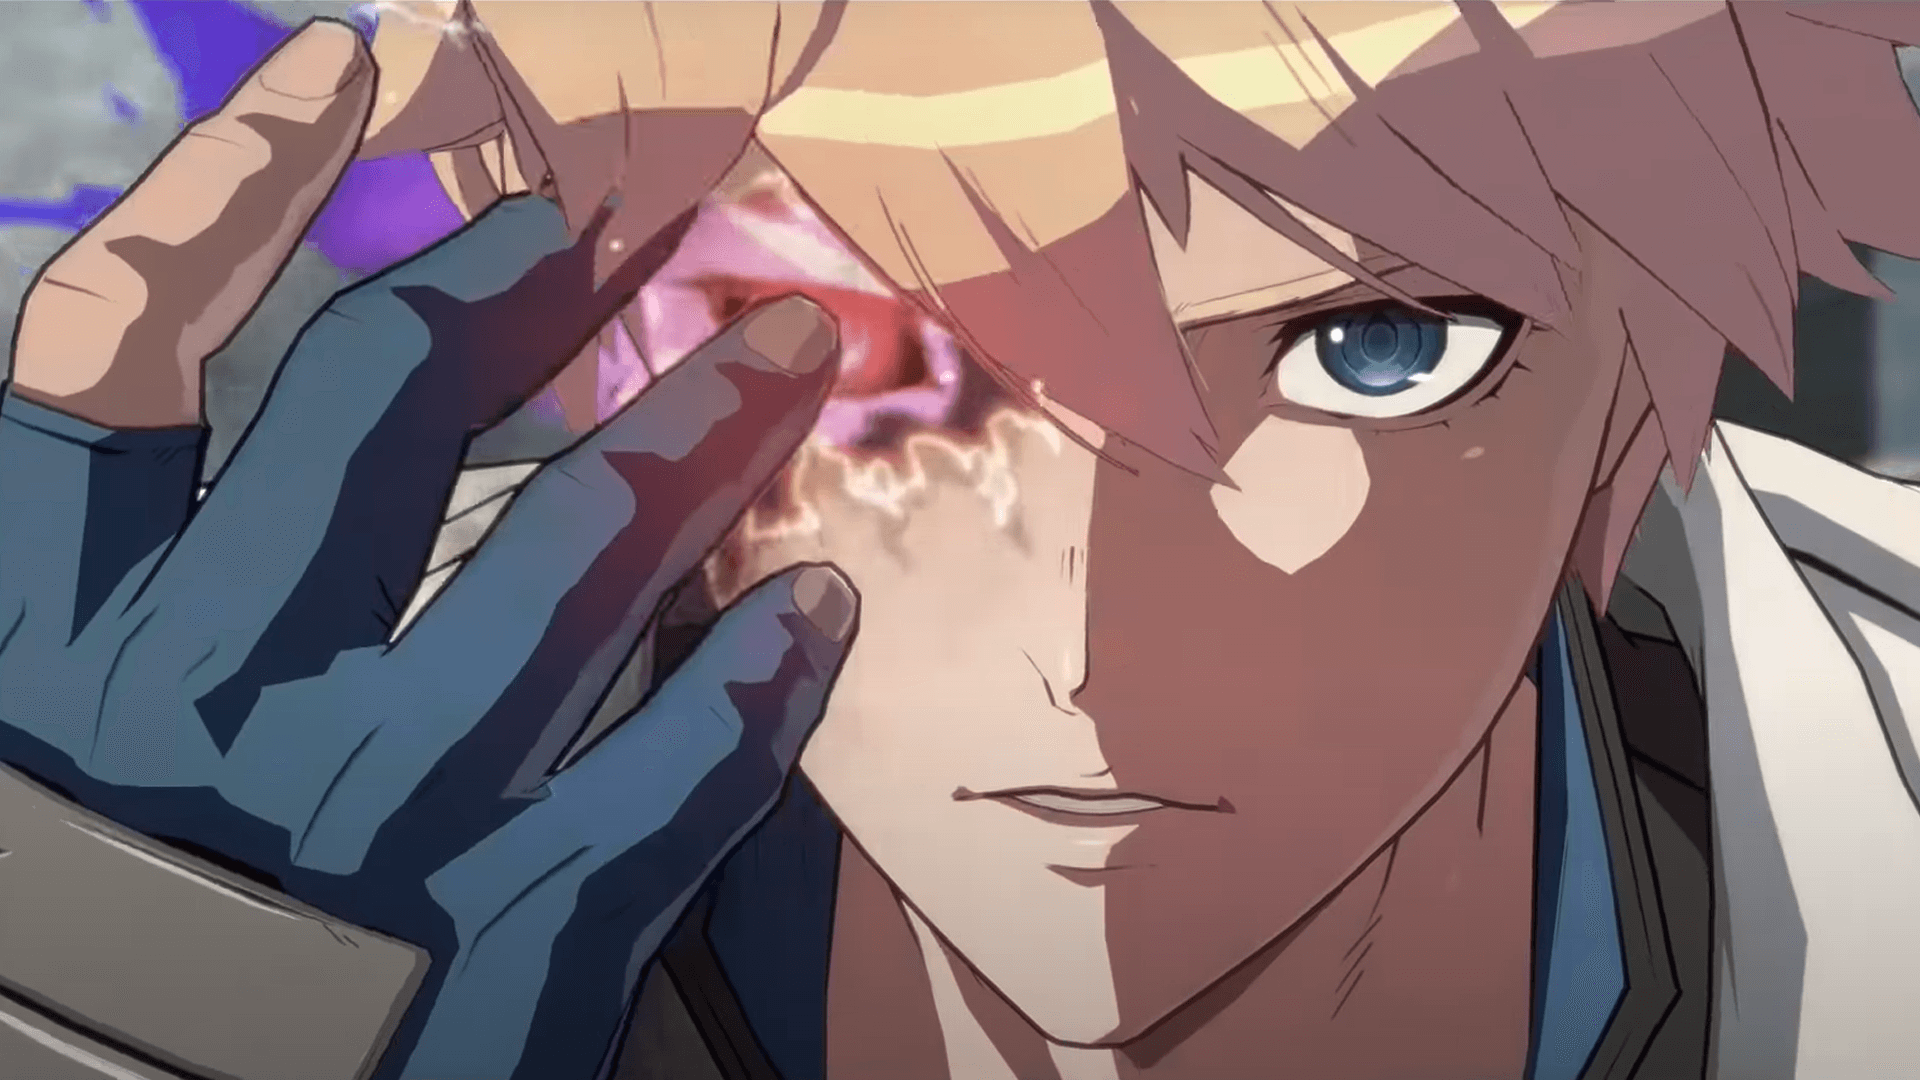 Guilty Gear: Strive Gameplay Video Released!